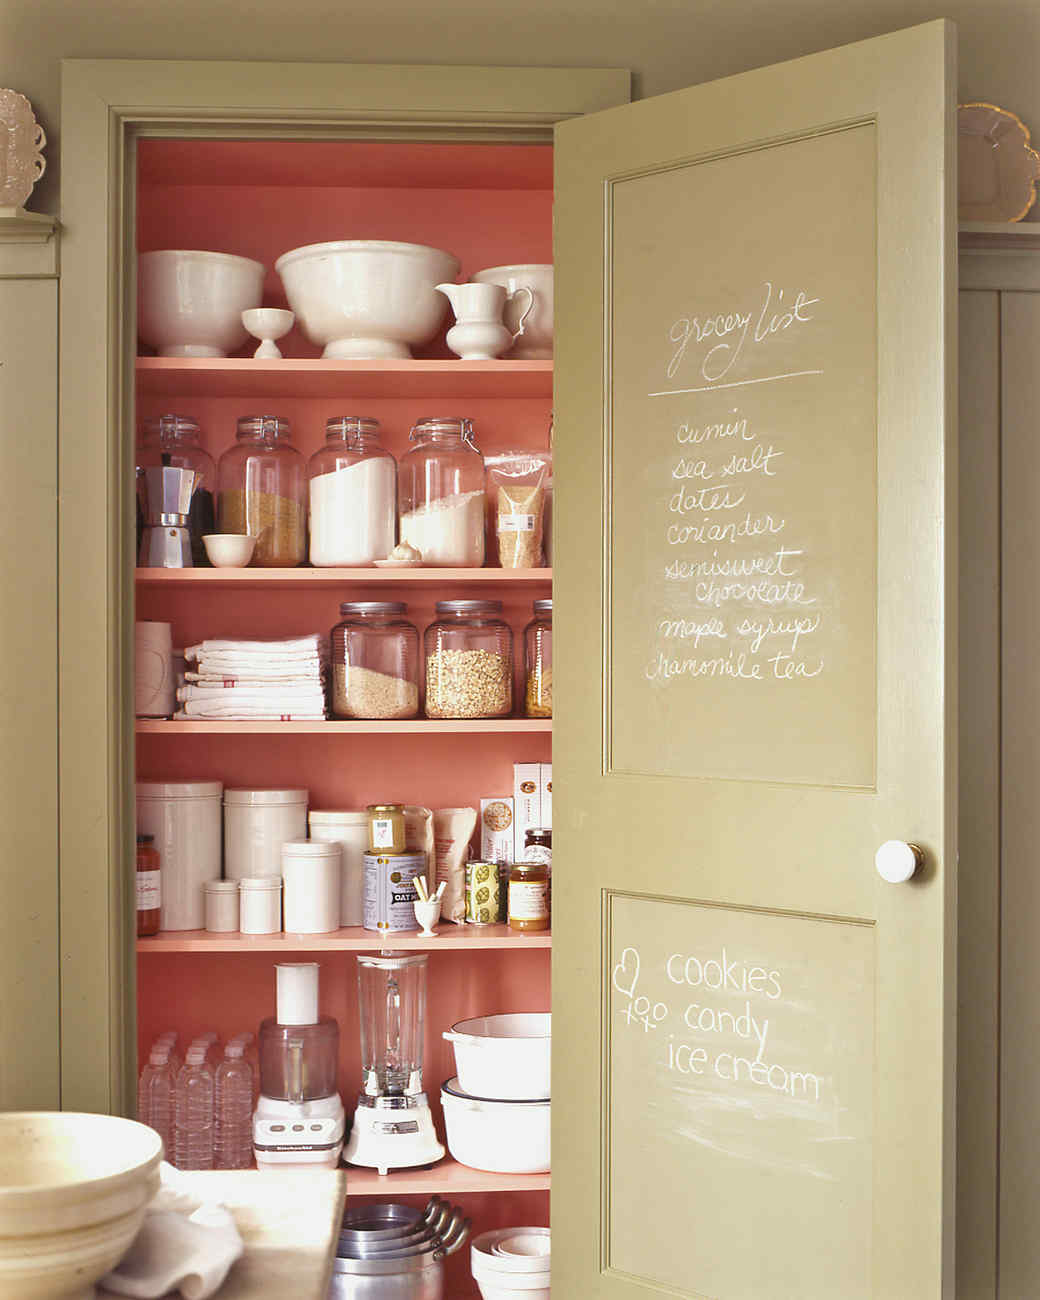 pantry reminder - Kitchen Organization Ideas